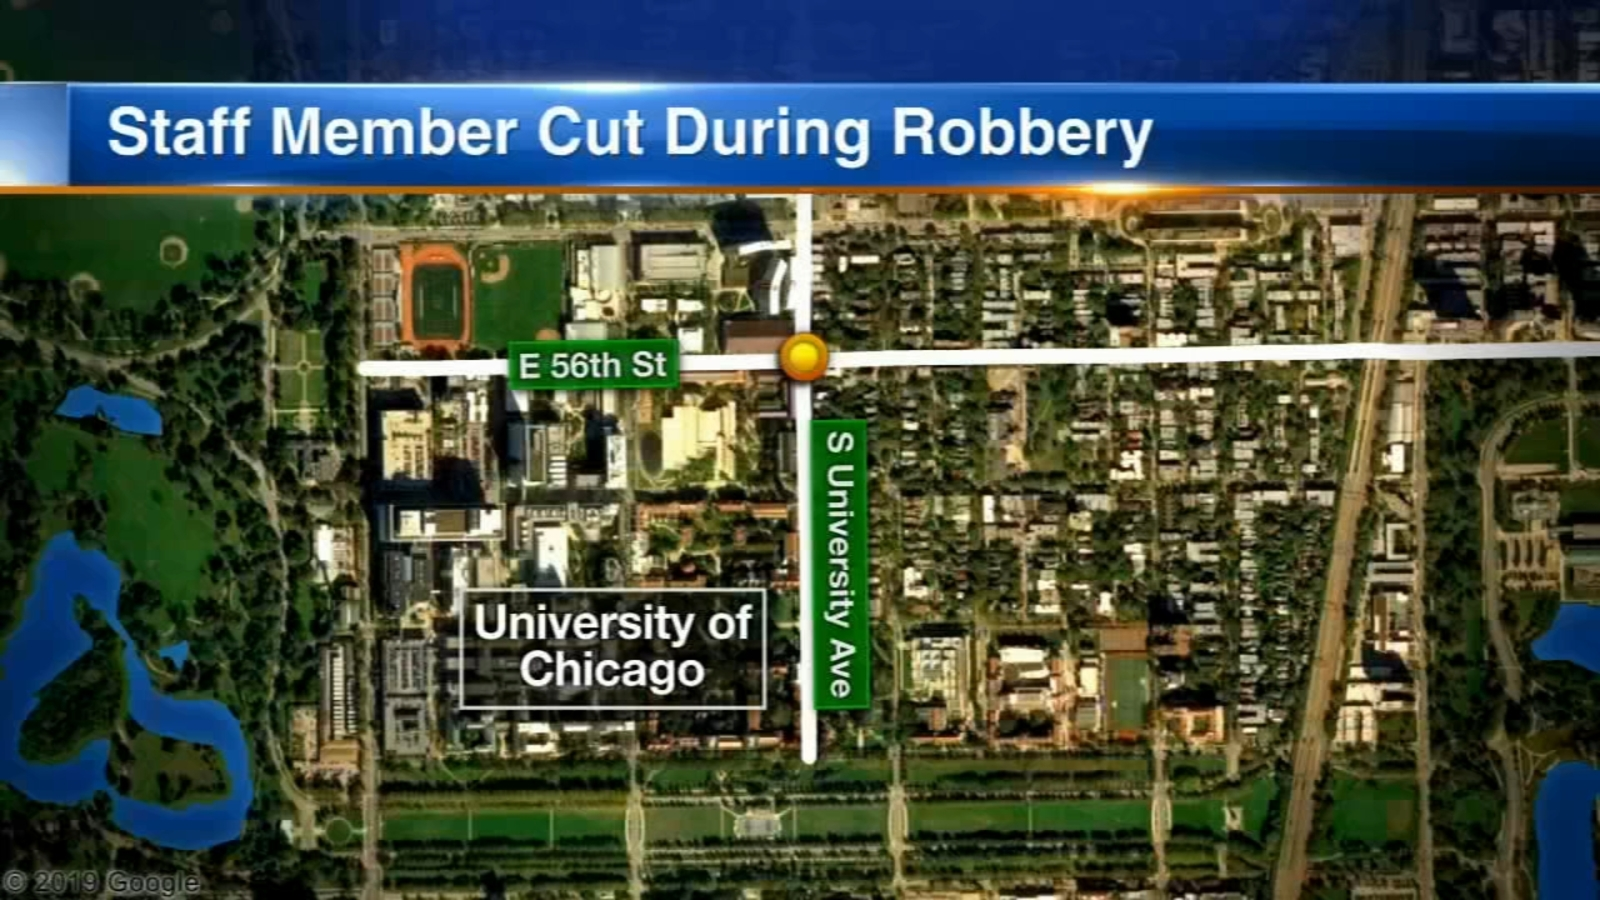 University of Chicago staff member cut during afternoon campus robbery